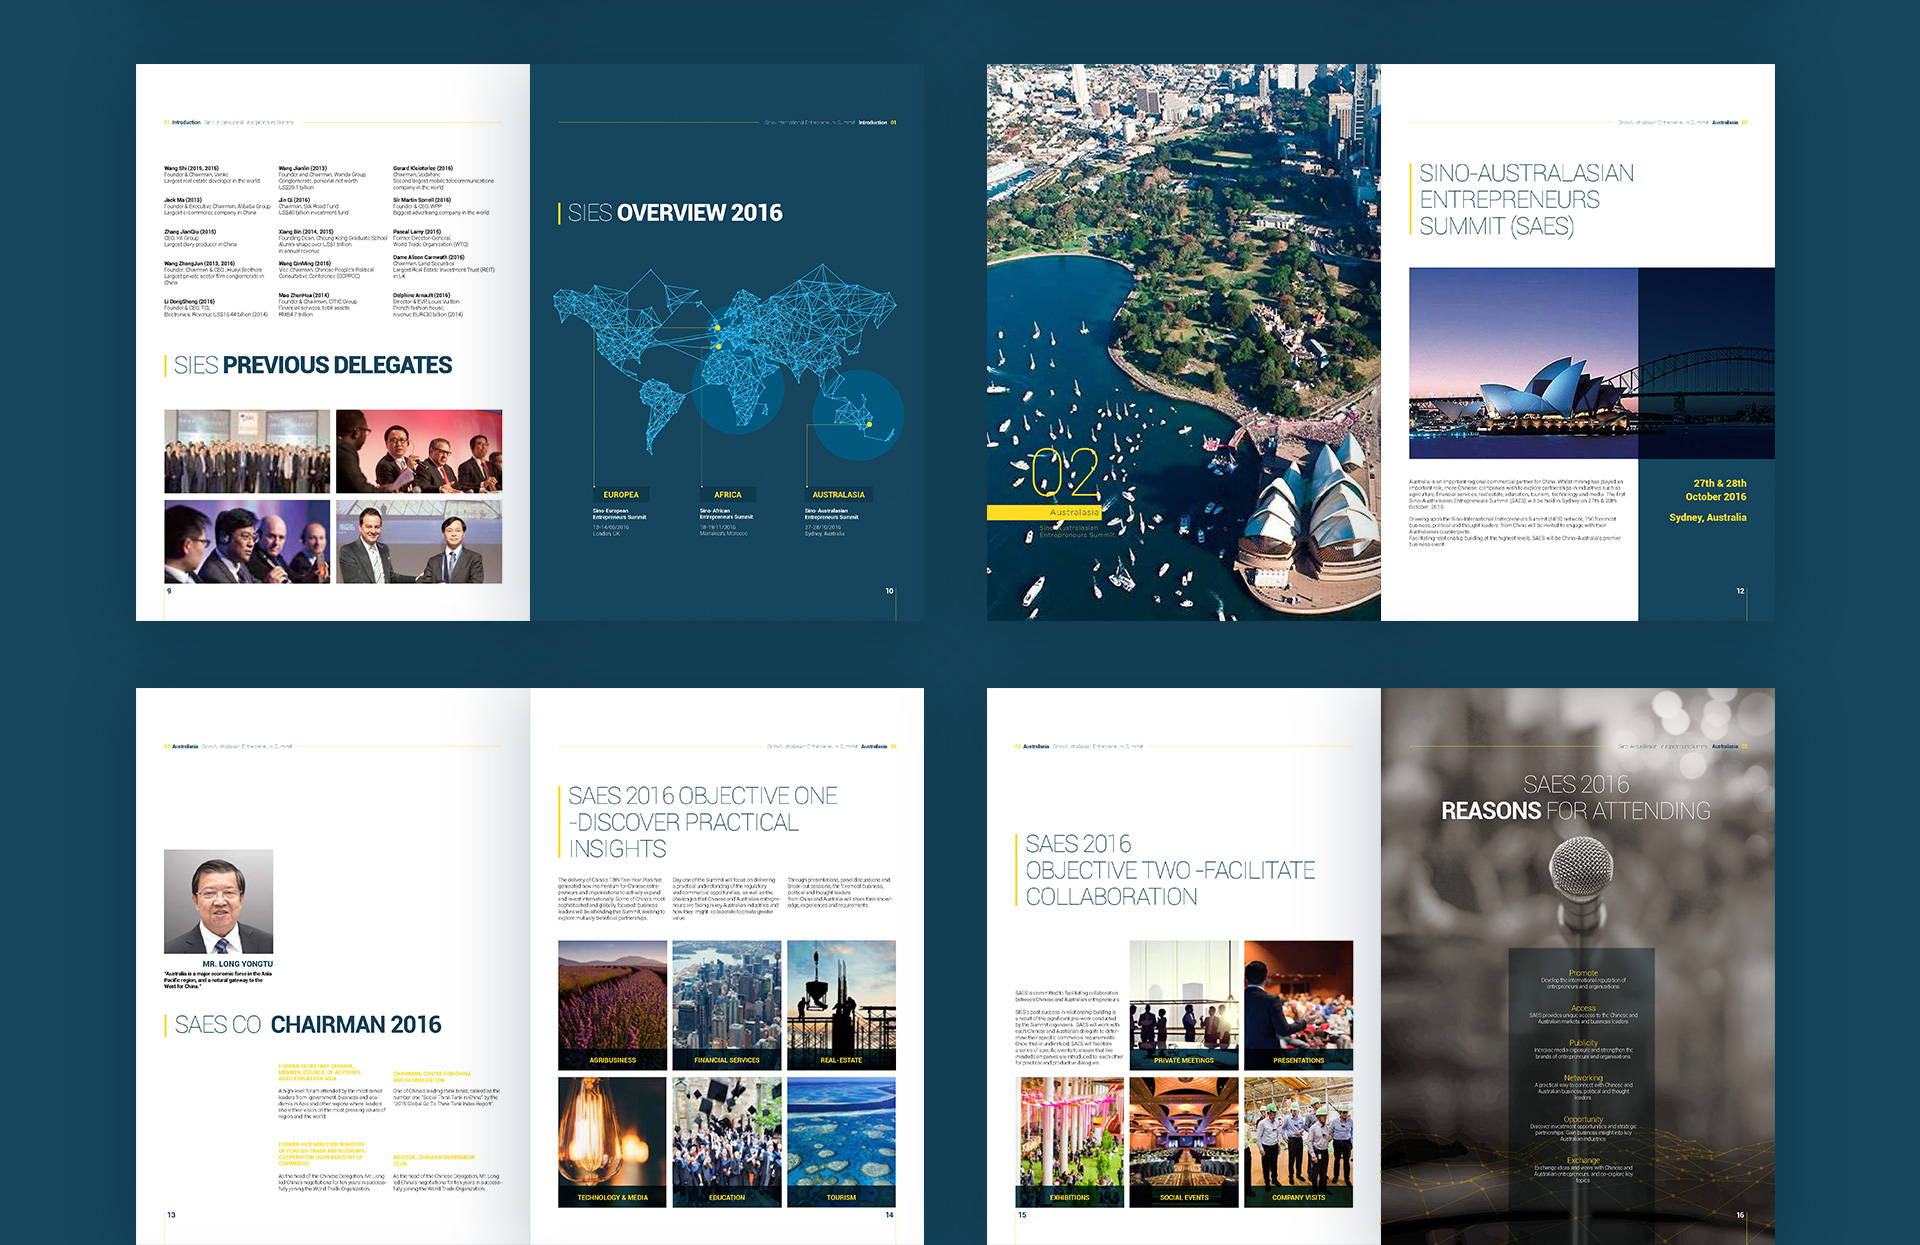 summit conference brand visual design by Z Creative Studio Branding & Graphic Design Melbourne